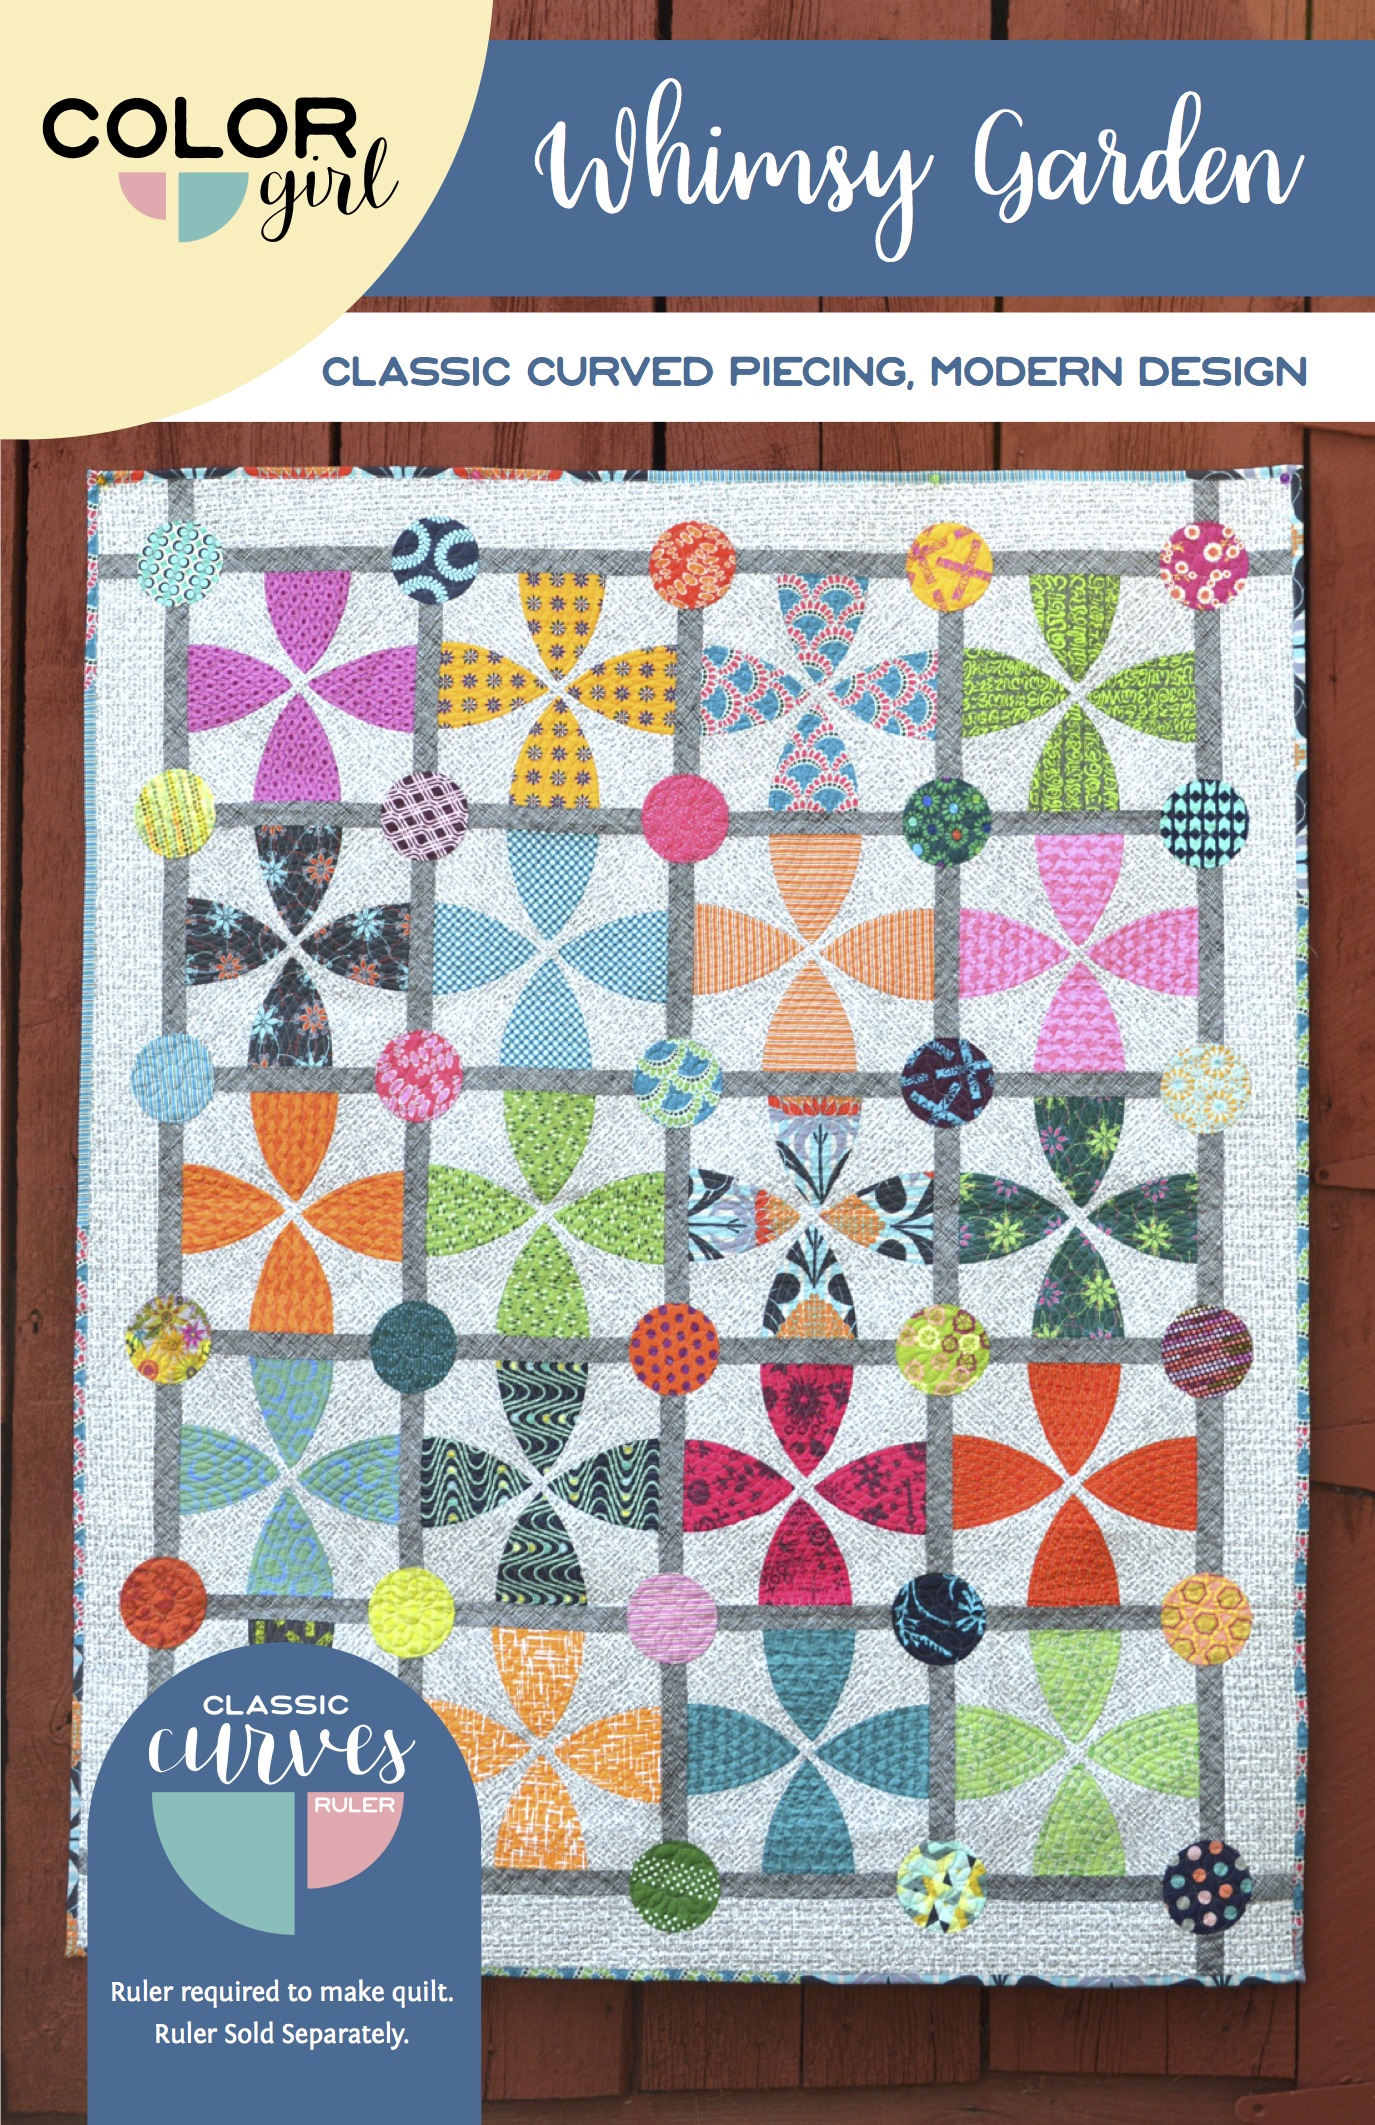 Whimsy Garden quilt pattern, modern curved piecing quilt by Color Girl Quilts